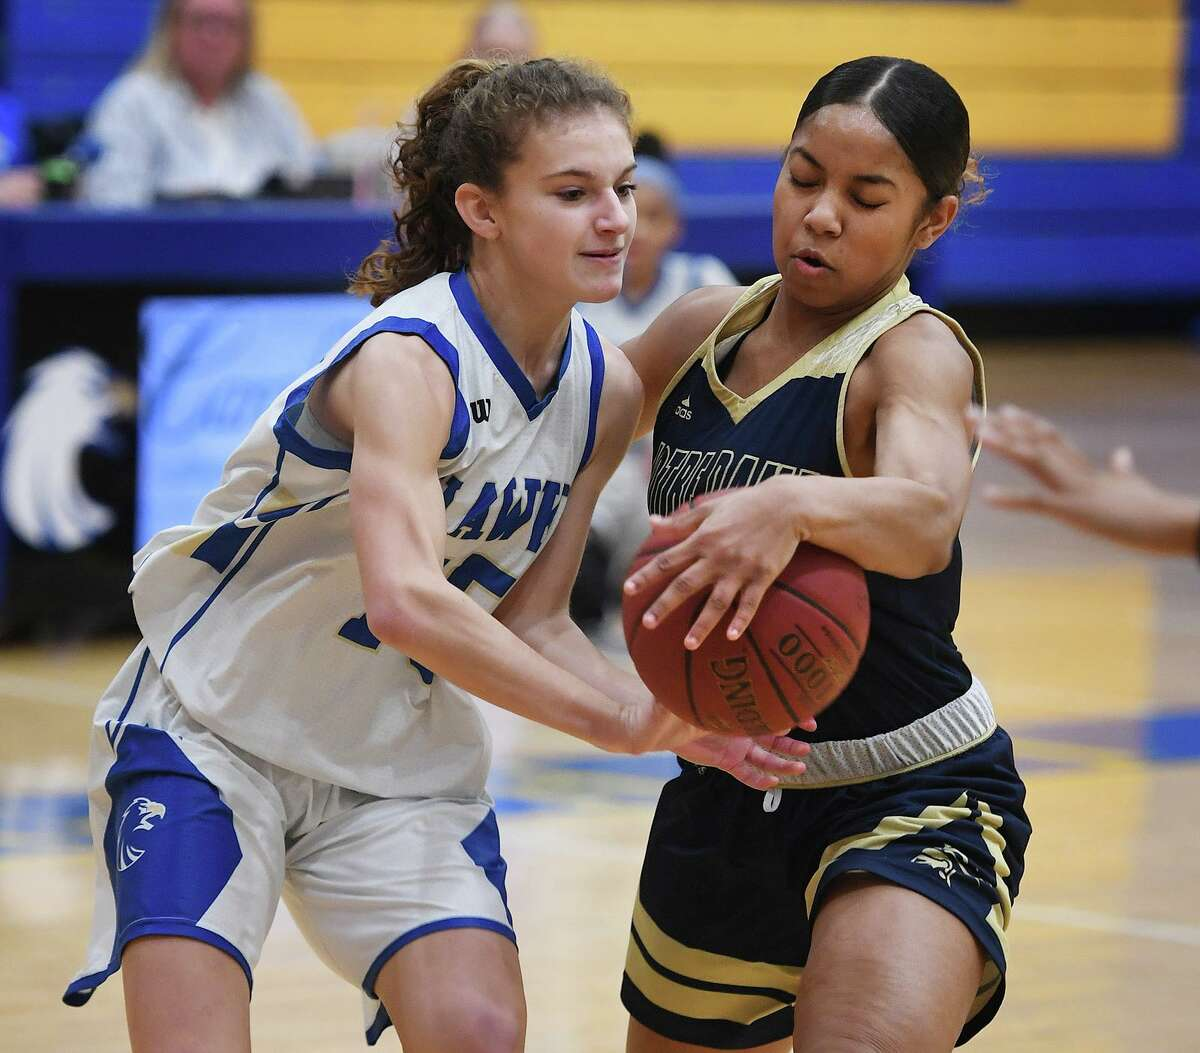 Newtown's Emma Magazu, left, is tied up by Notre Dame of Fairfield defender Aizhanique Mayo during the first half of their SWC girls basketball game at Newtown High School in Newtown, Conn. on Thursday, January 23, 2020.